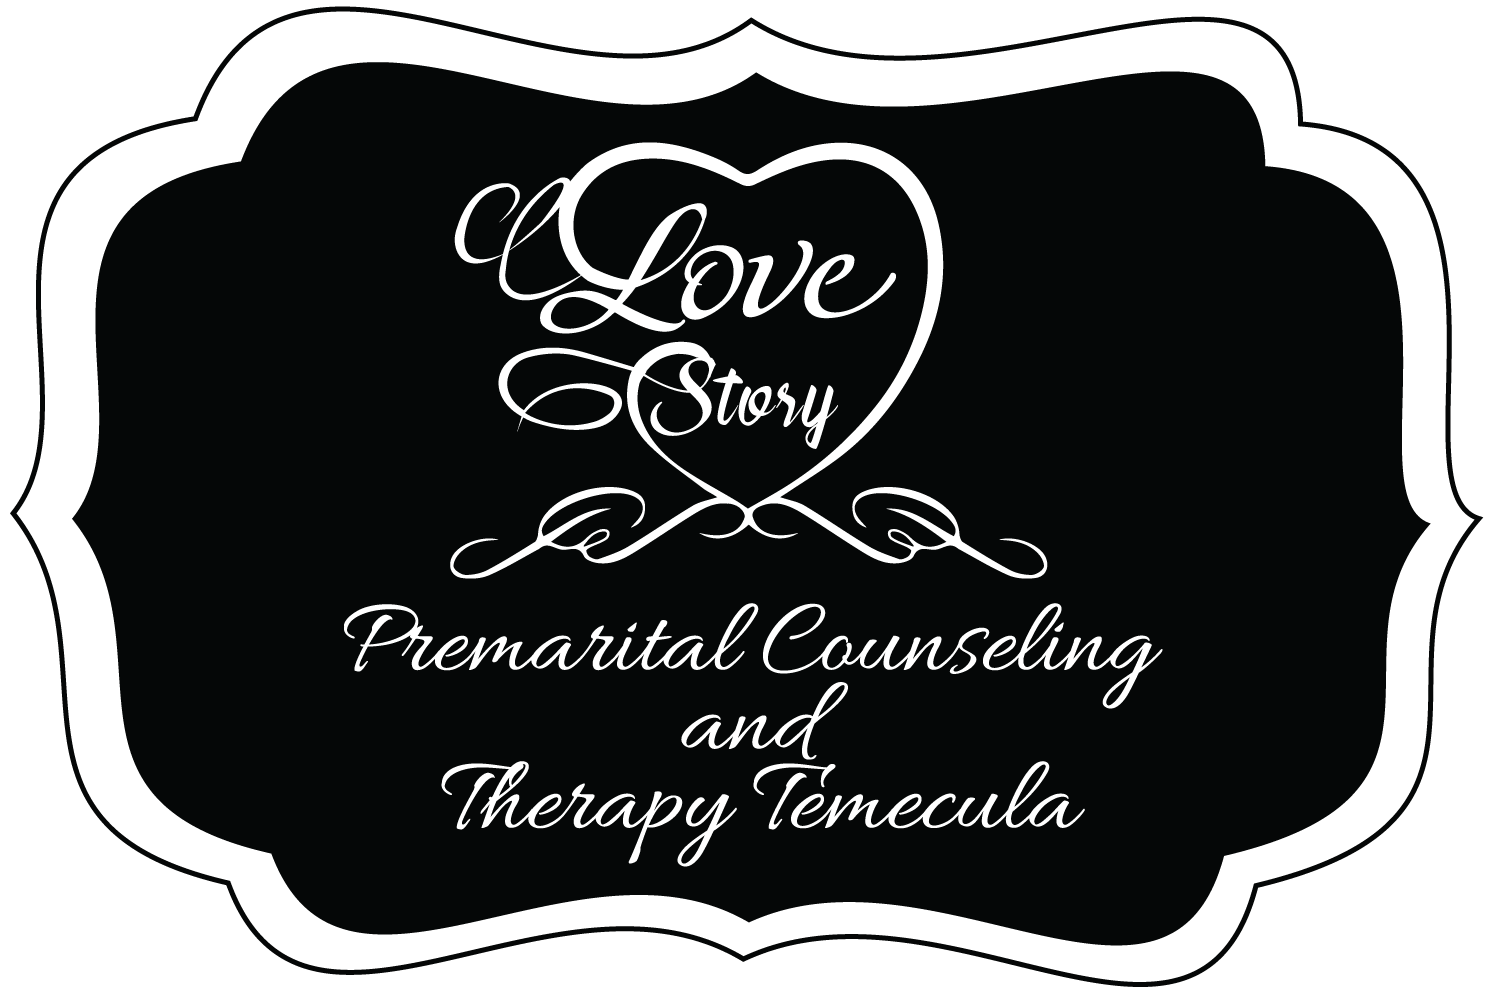 About The Gottman Method Emotionally Focused Couples Therapy